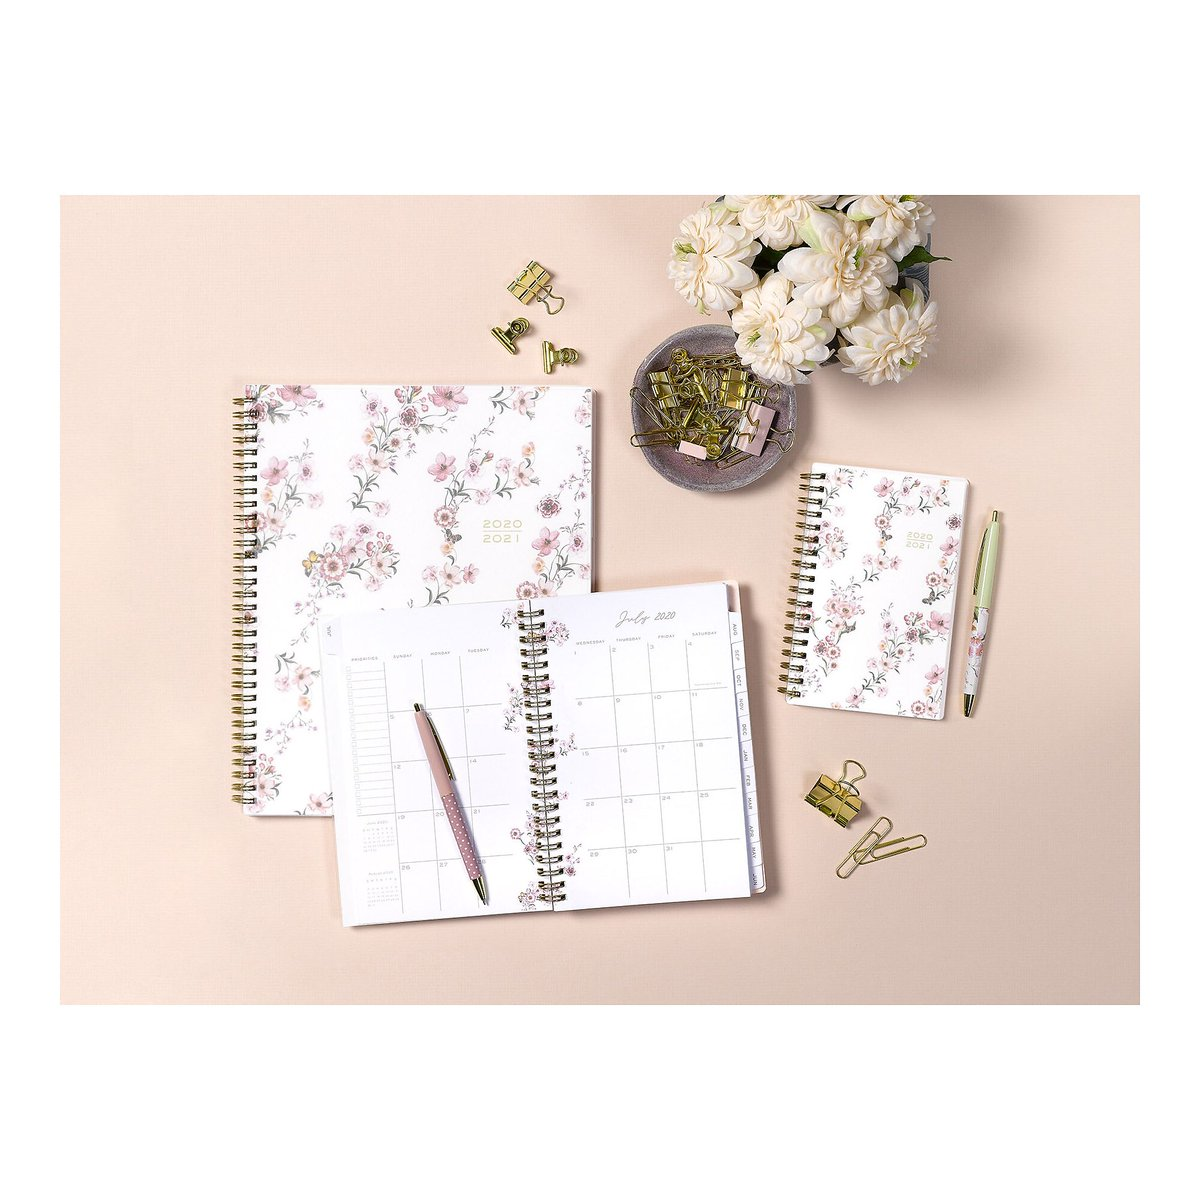 What's plum, floral and makes organizing fun? The new 2020-2021 line of goodies from @plumprettysugar for @blueskyplanners of course! @people recommends the line for looking luxe and staying affordable: https://t.co/cwB9P4xWAQ https://t.co/oNGymXM4vS